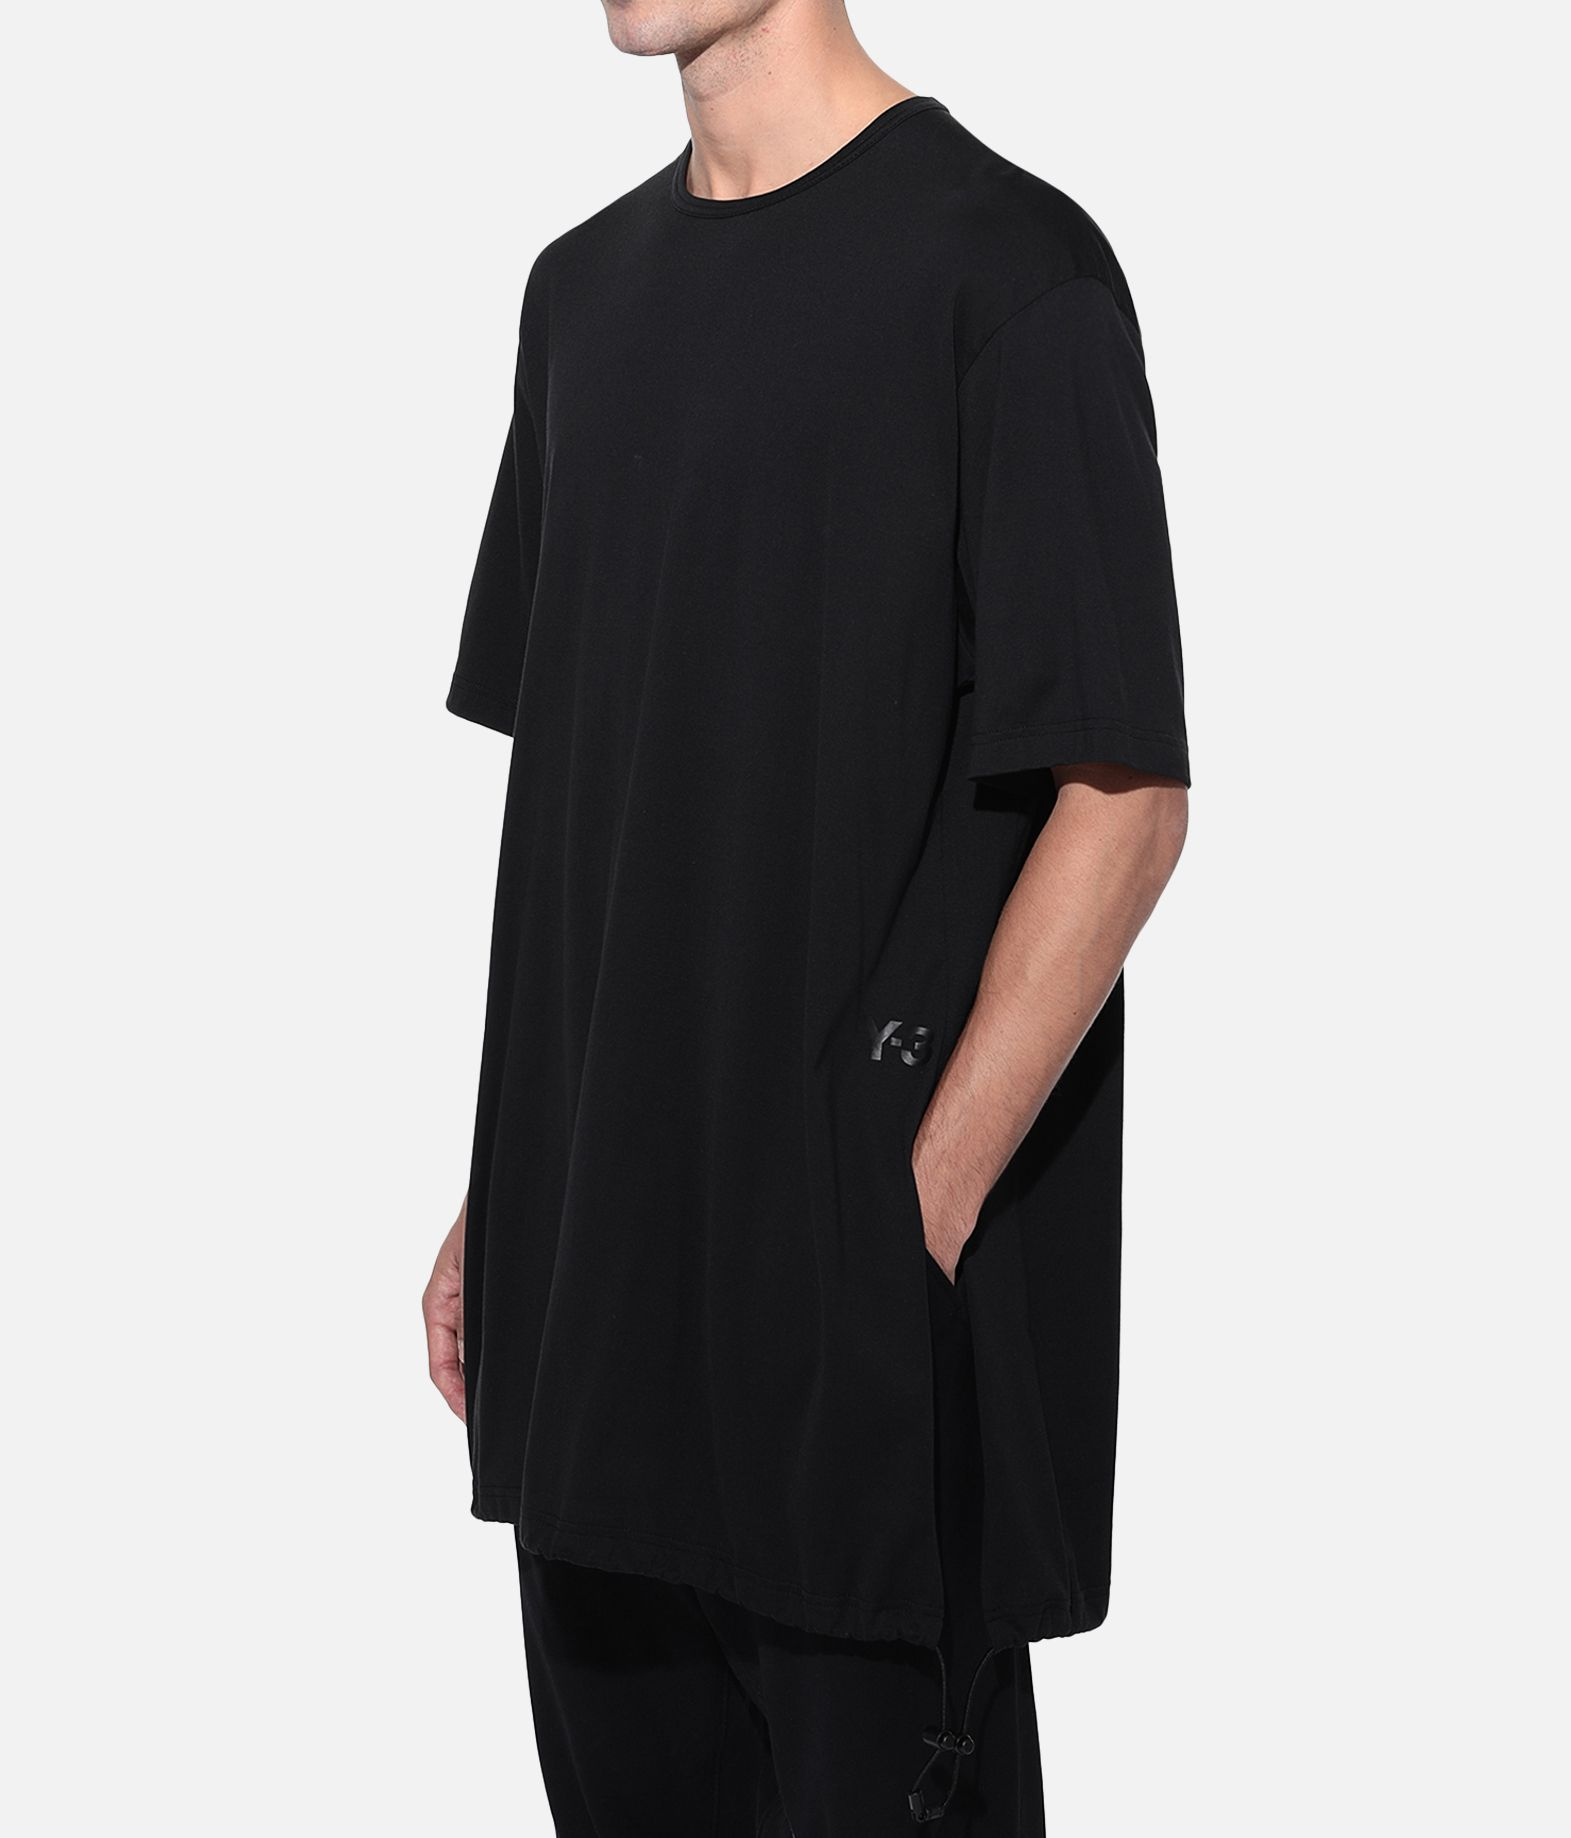 Y-3 Y-3 Drawstring Long Tee  Short sleeve t-shirt Man e